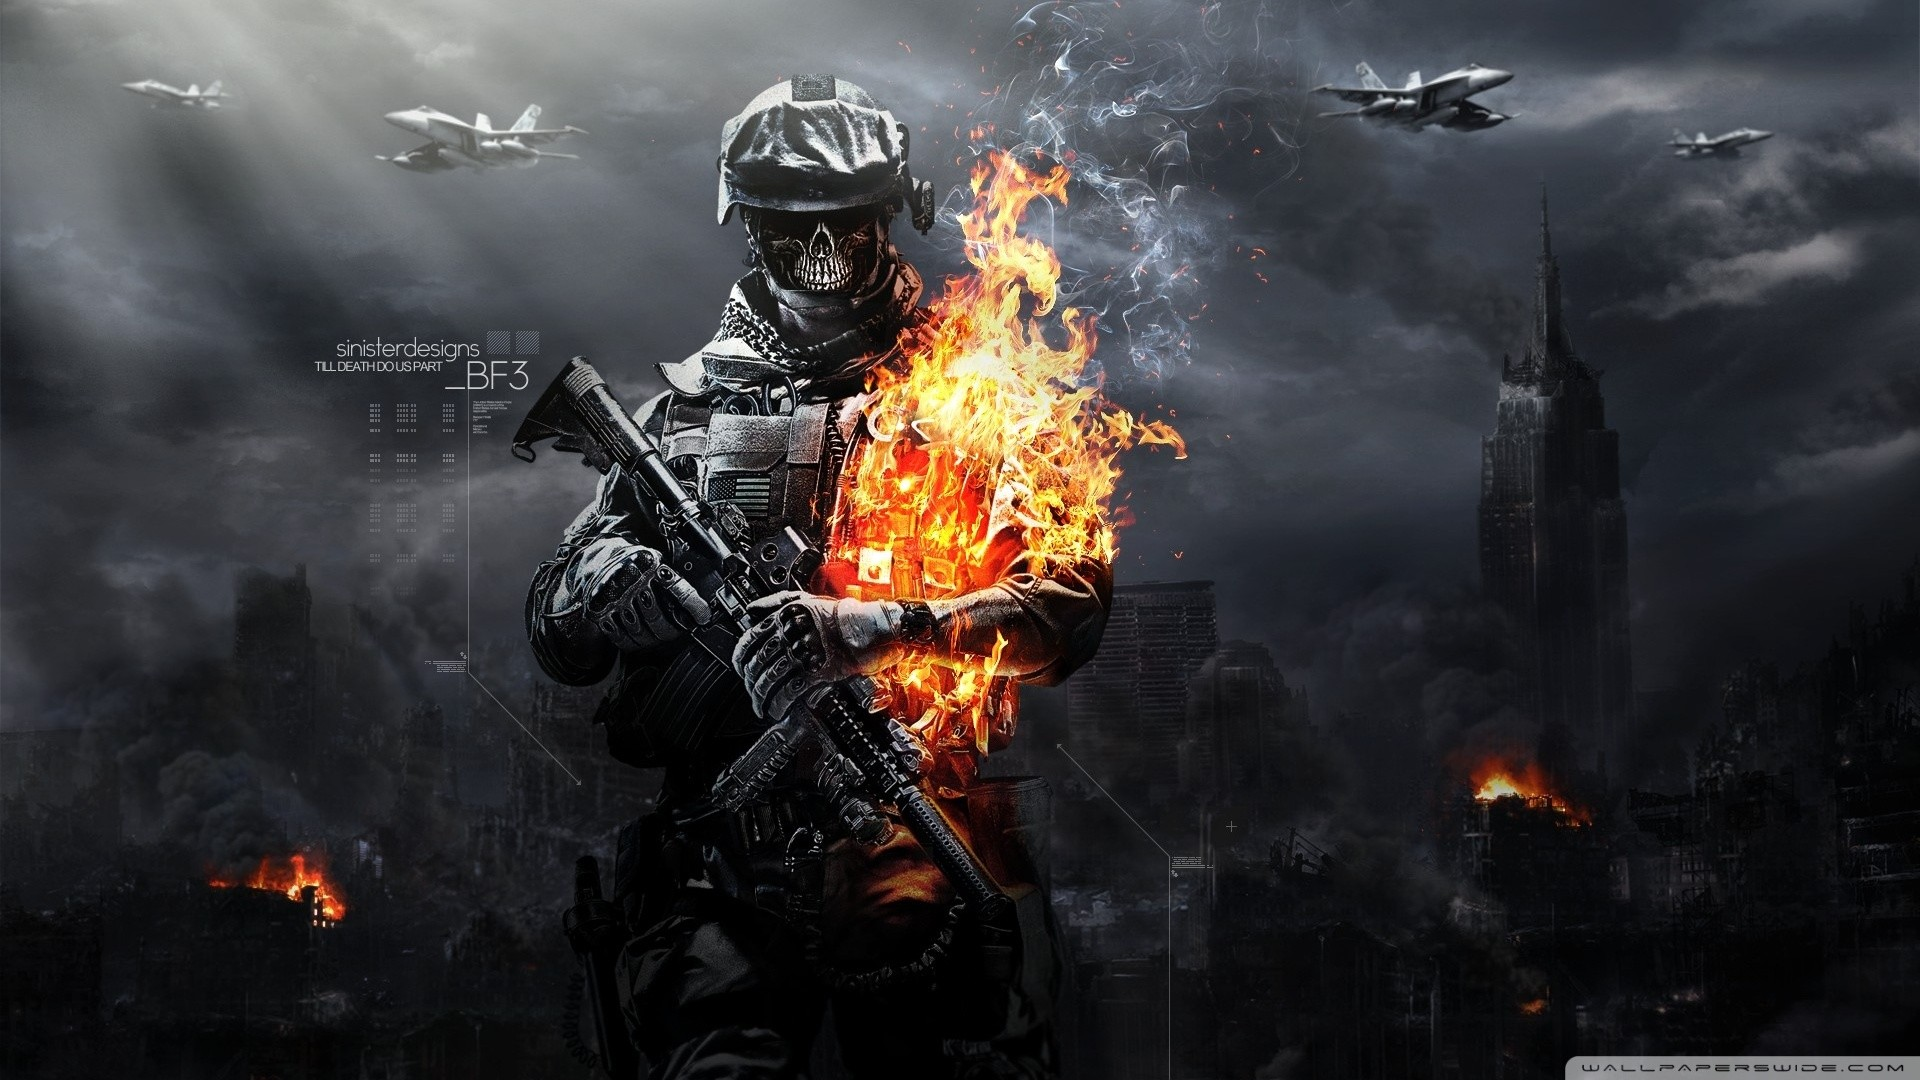 1920x1080 Battlefield 4 HD Wallpapers - Battlefield - PS3 Games wallpapers - HD - #16